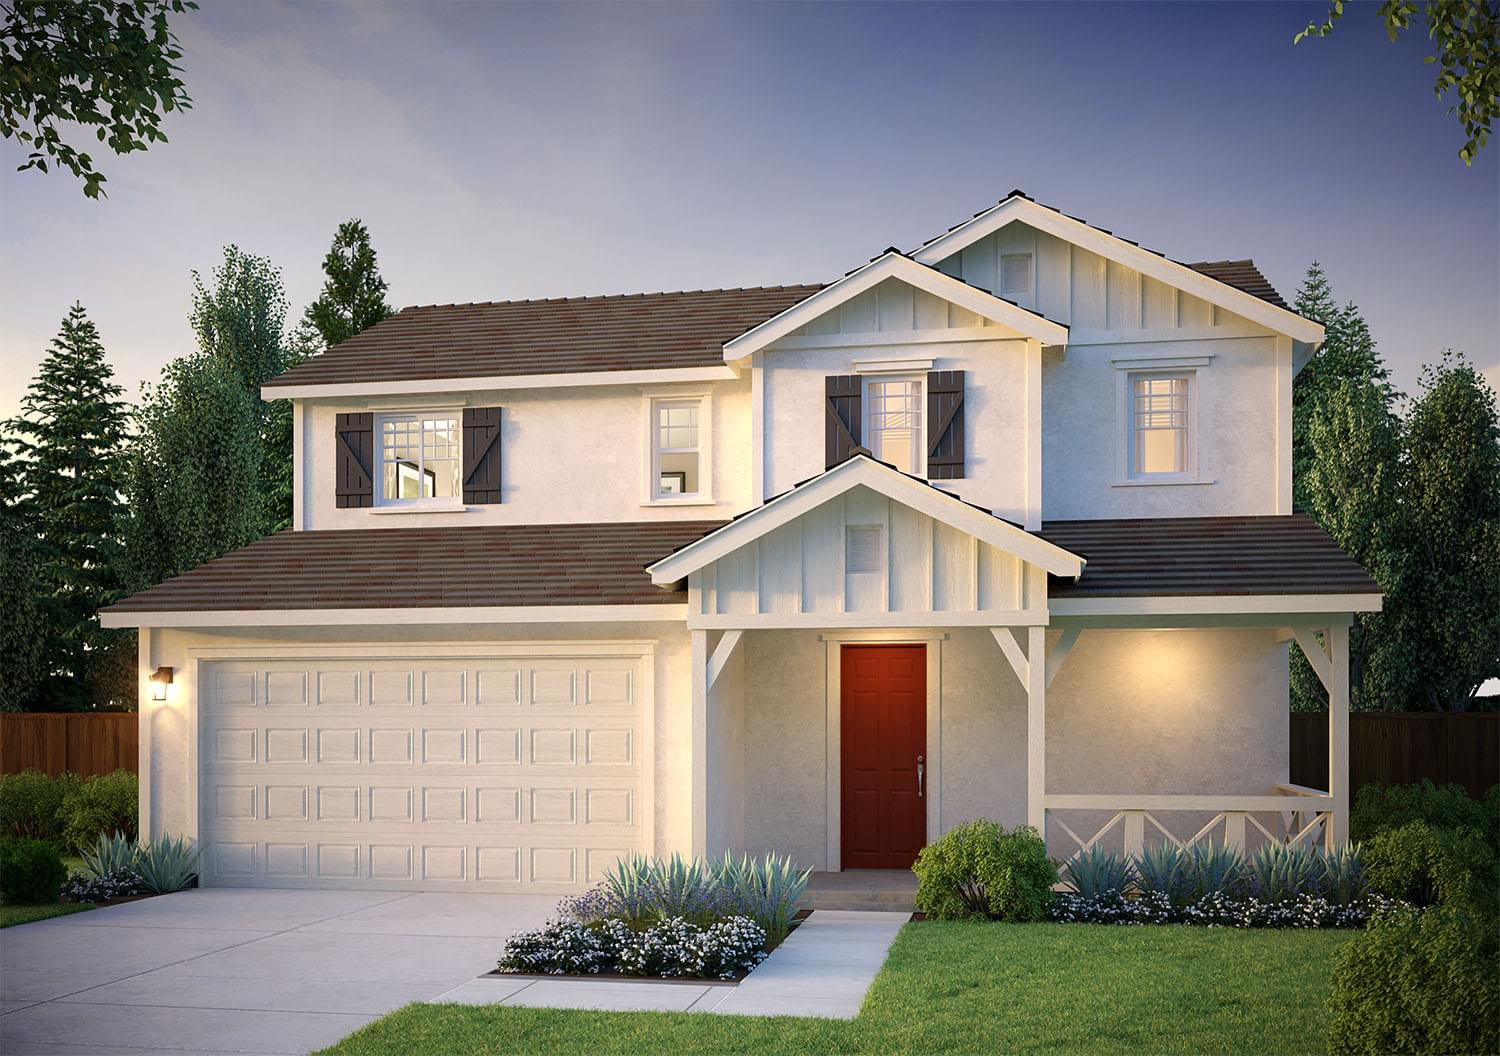 450 Thistle Street in Hollister, CA by DeNova Homes